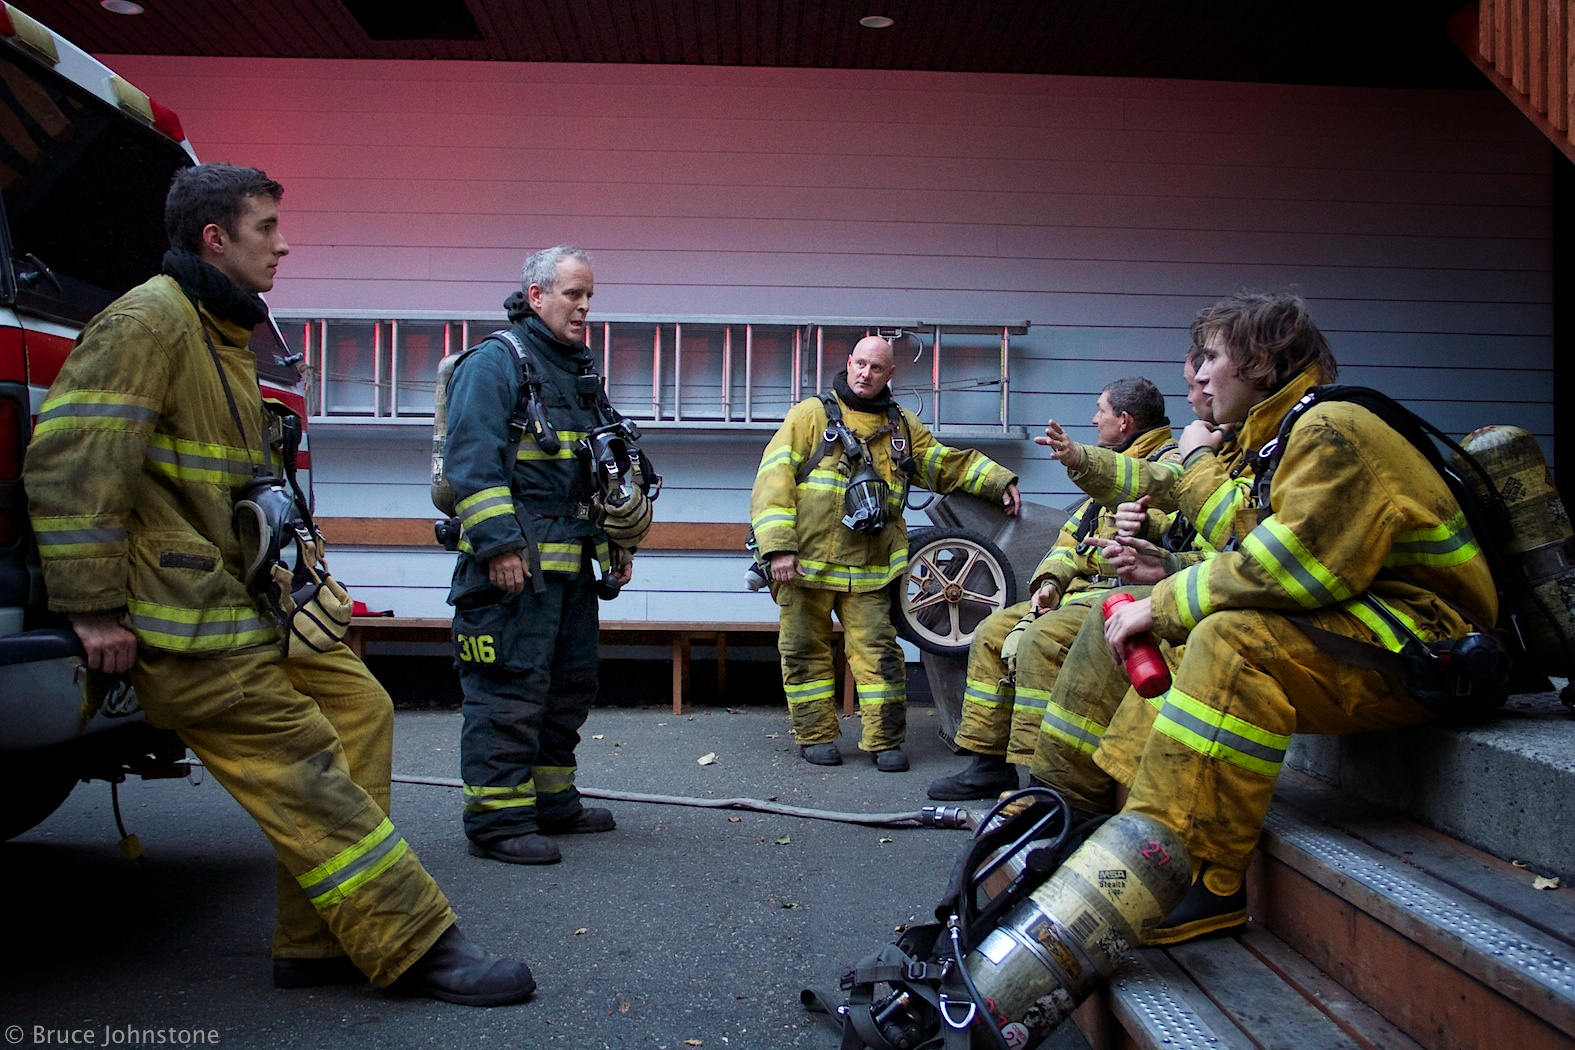 Lieutenant Barrow training new recruits at the Comox Fire Training Centre